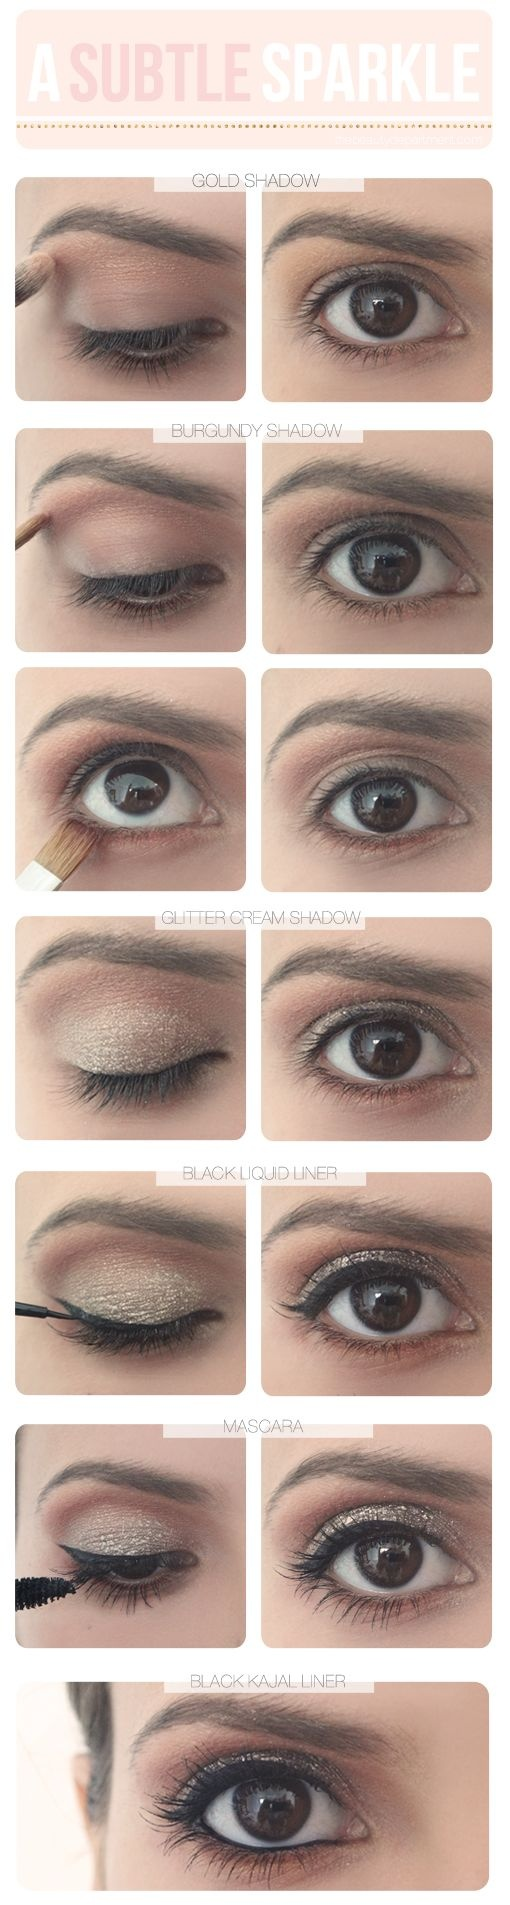 Beauty and make-up ideas: a collection of Hair and beauty ideas to ...